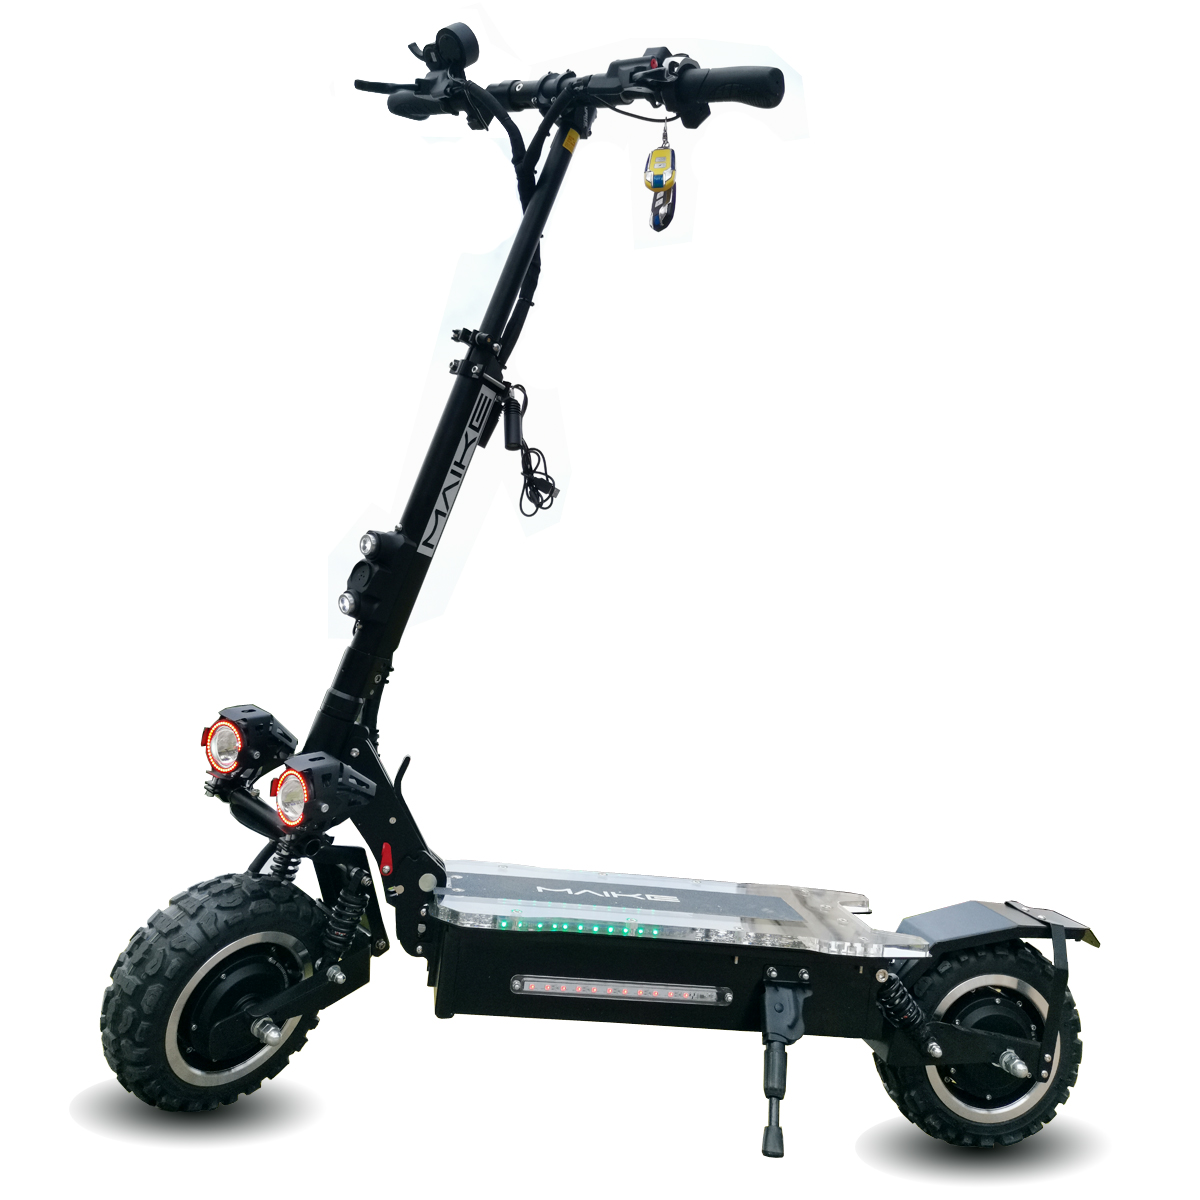 MAIKE KK4S Electric Mobility Scooter With Off-road Tires, Black